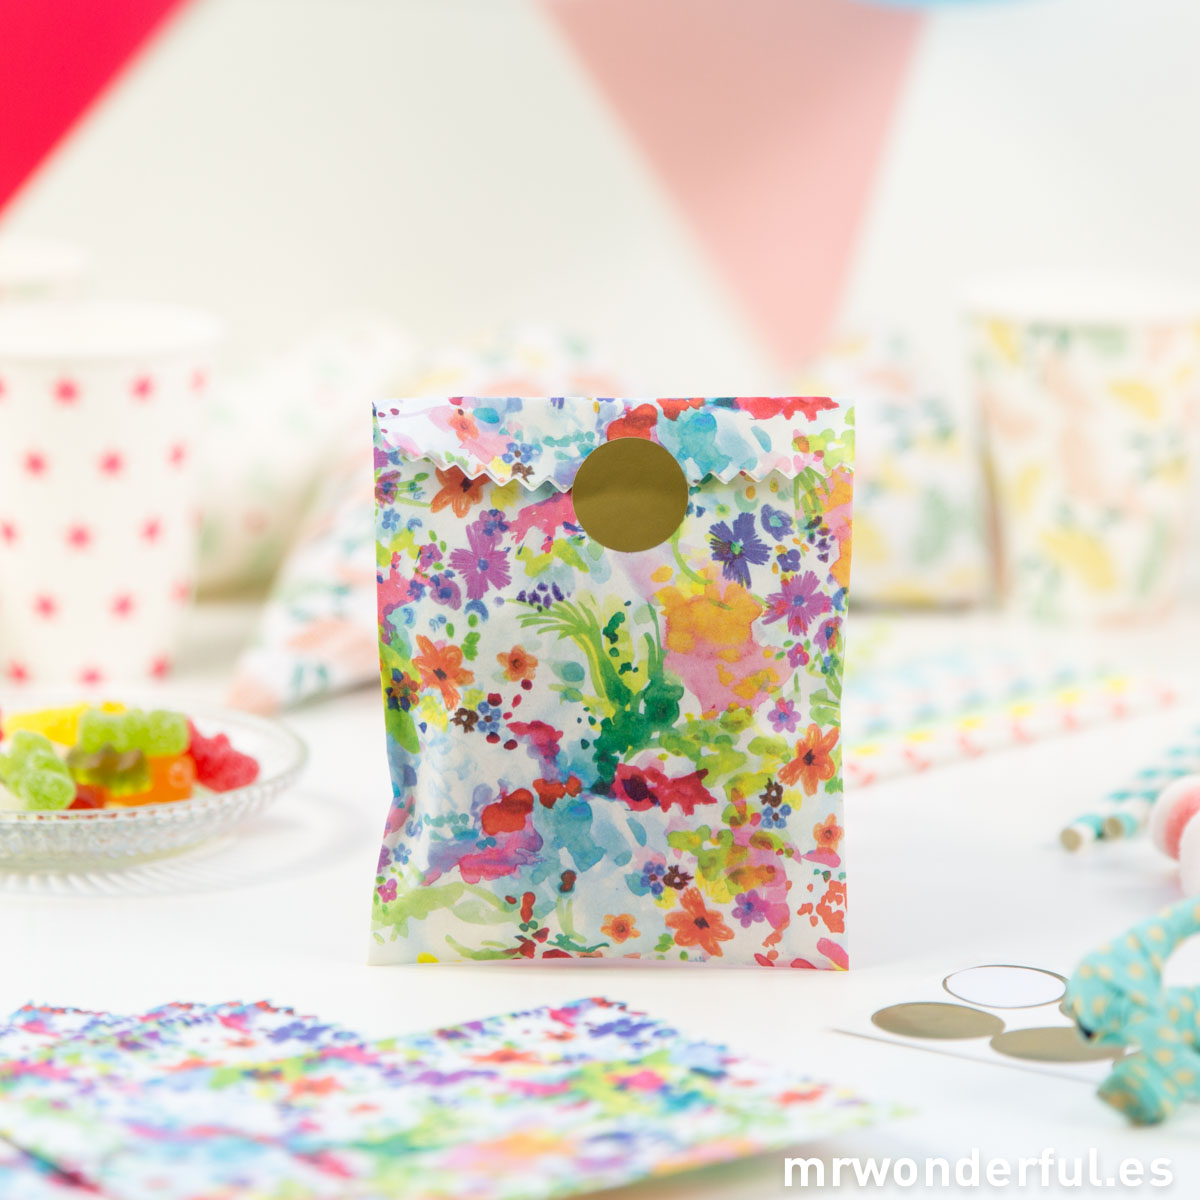 Mr.Wonderful bolsas de papel estampado floral